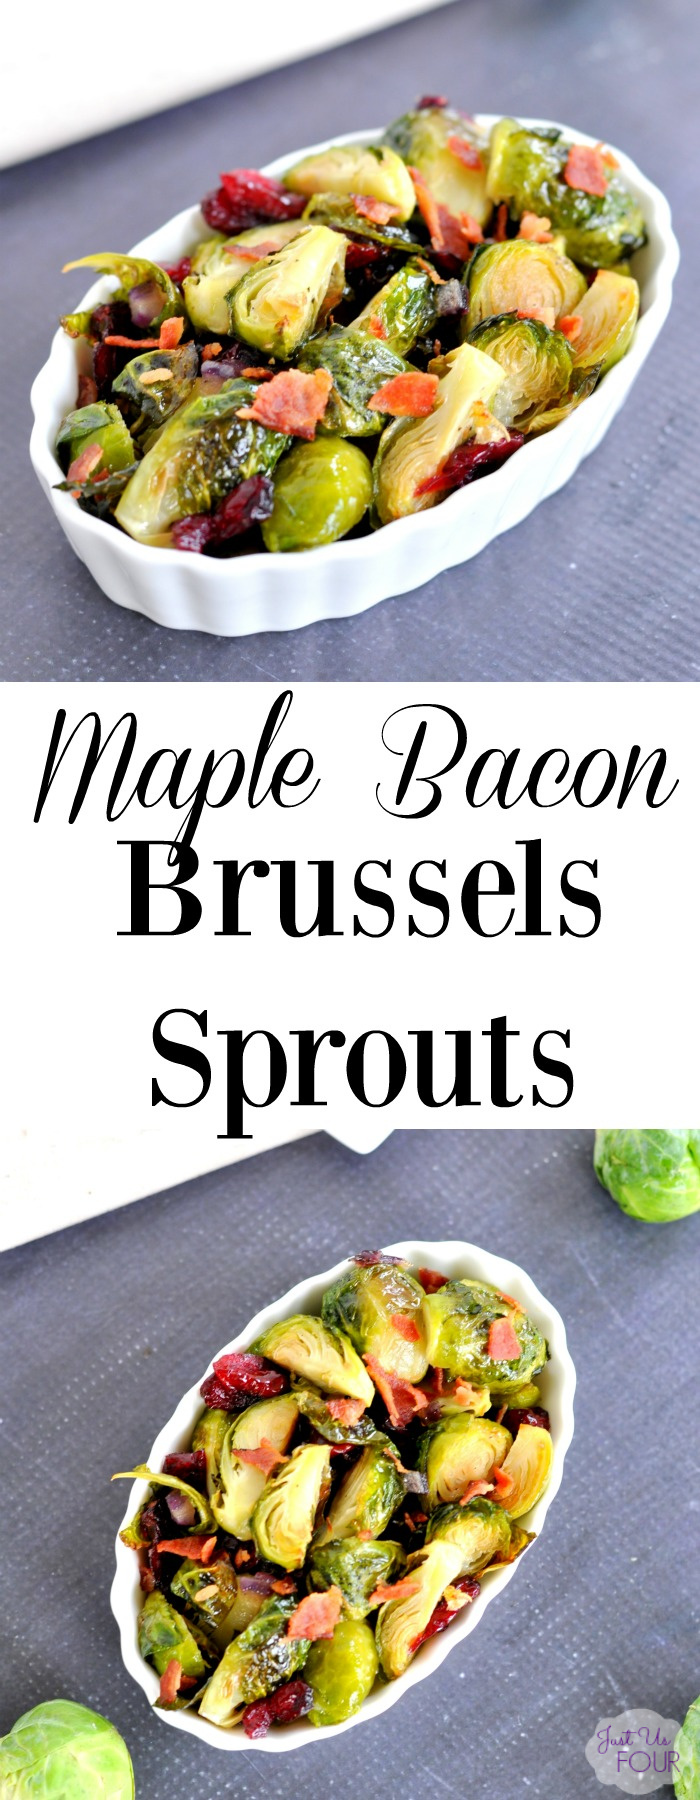 Maple bacon Brussels sprouts are the perfect side dish for Thanksgiving...or any day.